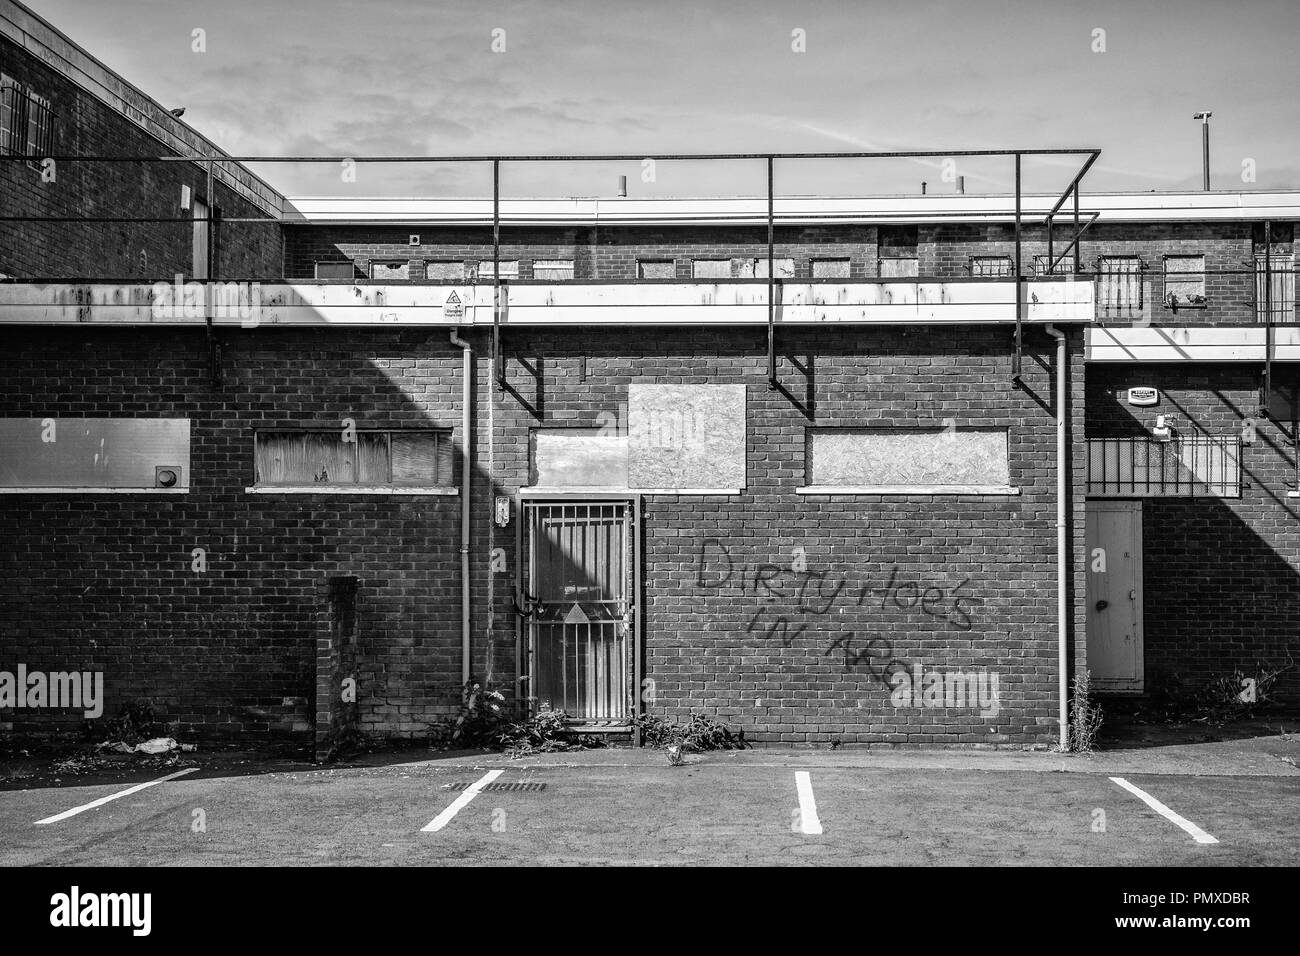 Freeman street and surrounding streets earmarked for regeneration.Grimsby N.E Lincolnshire England UK - Stock Image